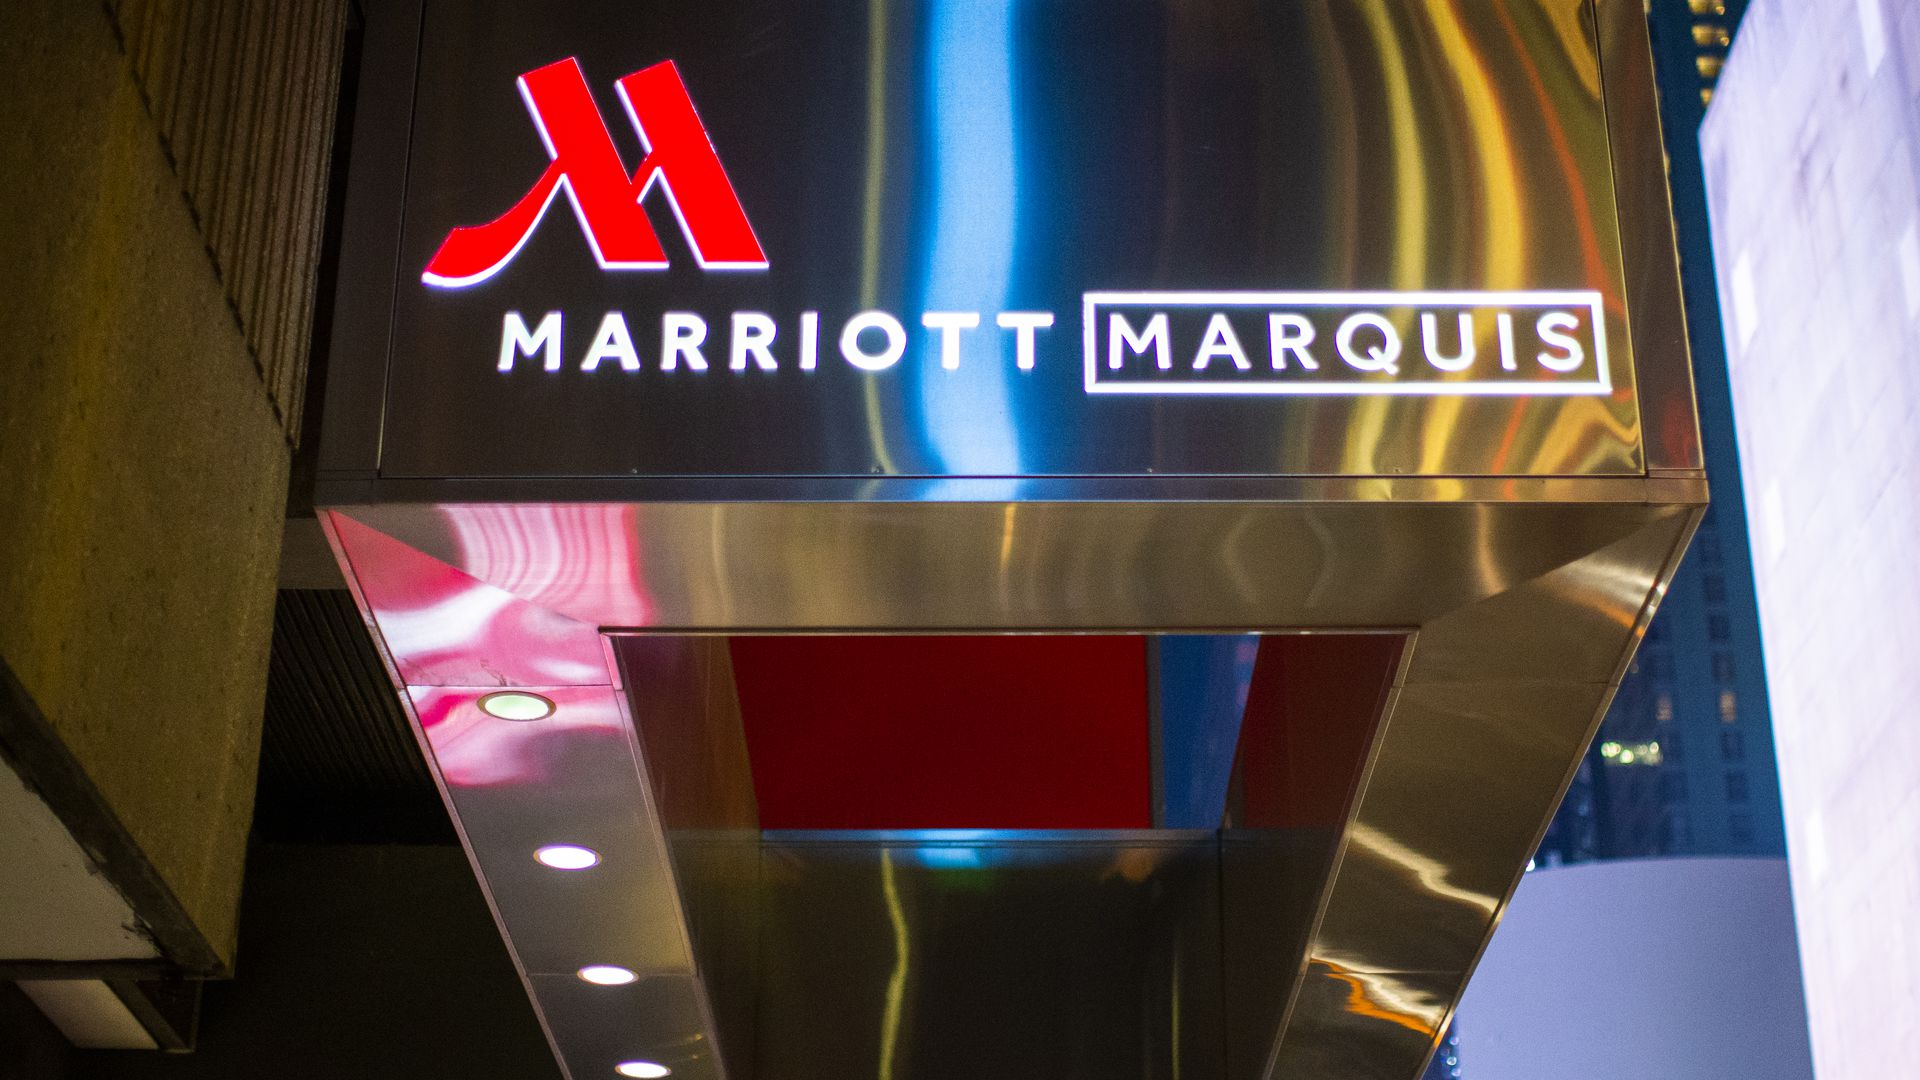 Marriott marquis from Times Square